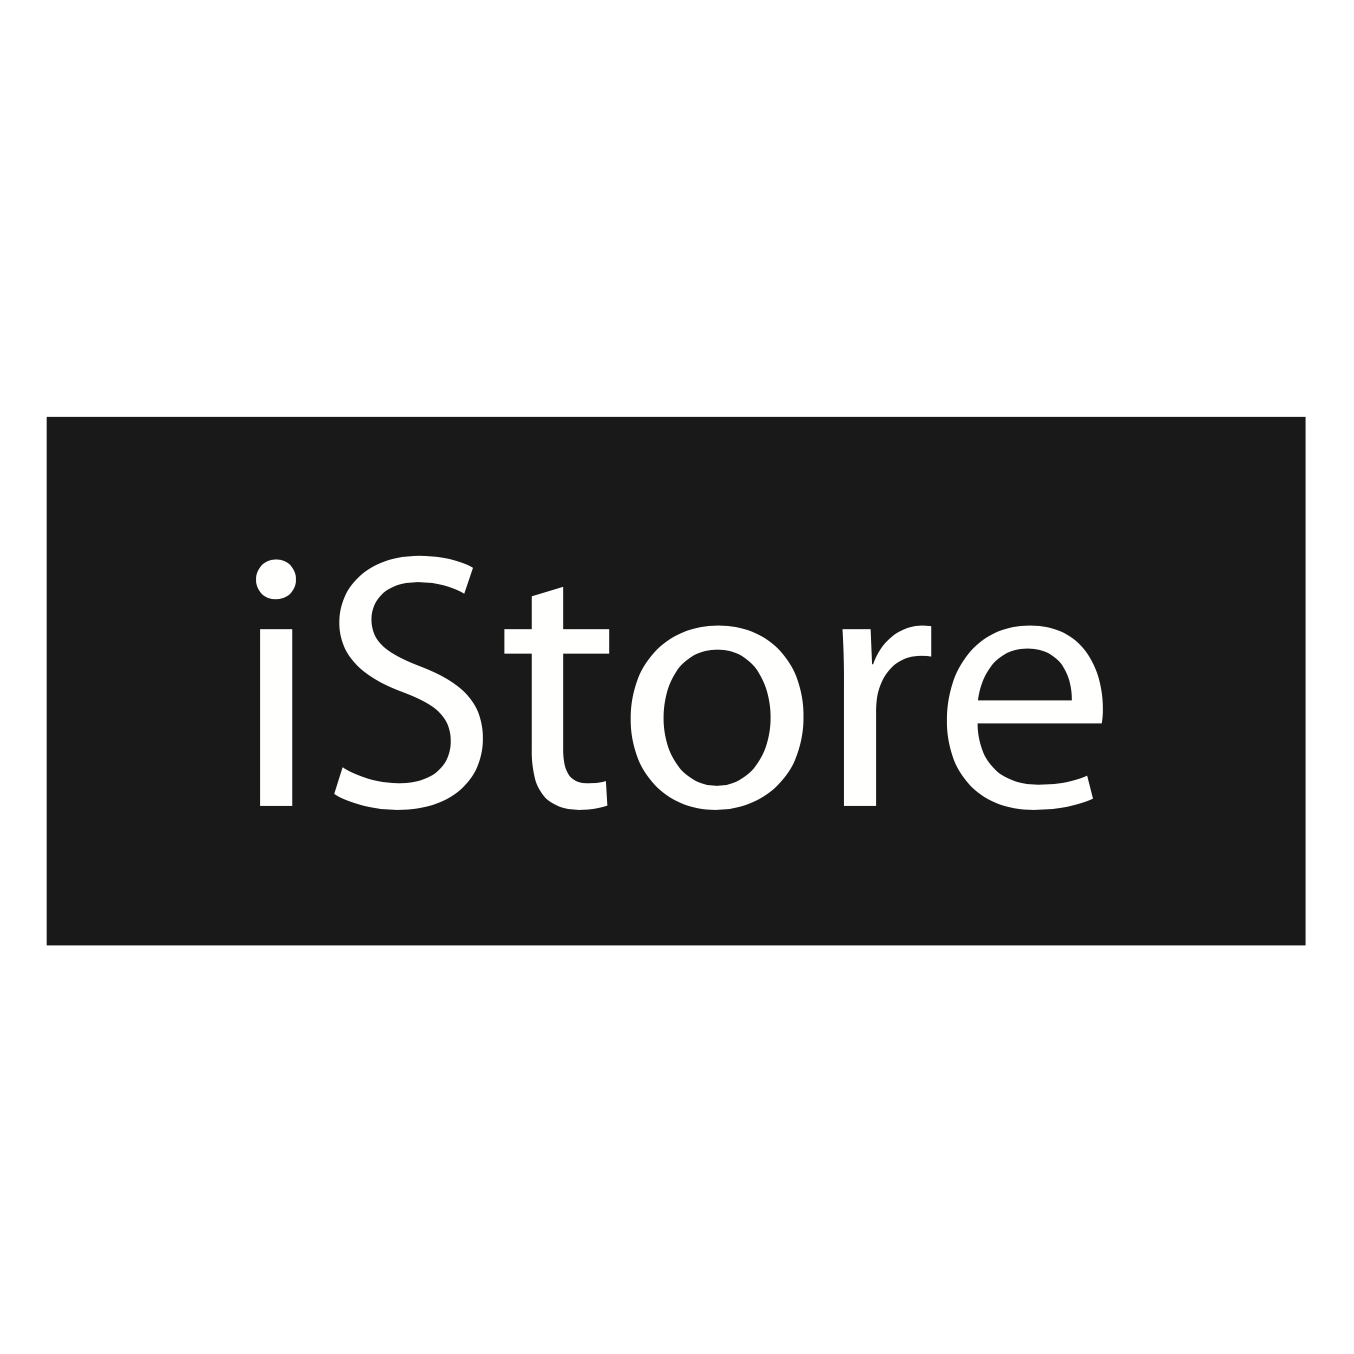 Hi. Your iStore card application process is THE WORST applicaion process I have ever had to deal with! An agent made contact and gave an email address to send supporting documents to.